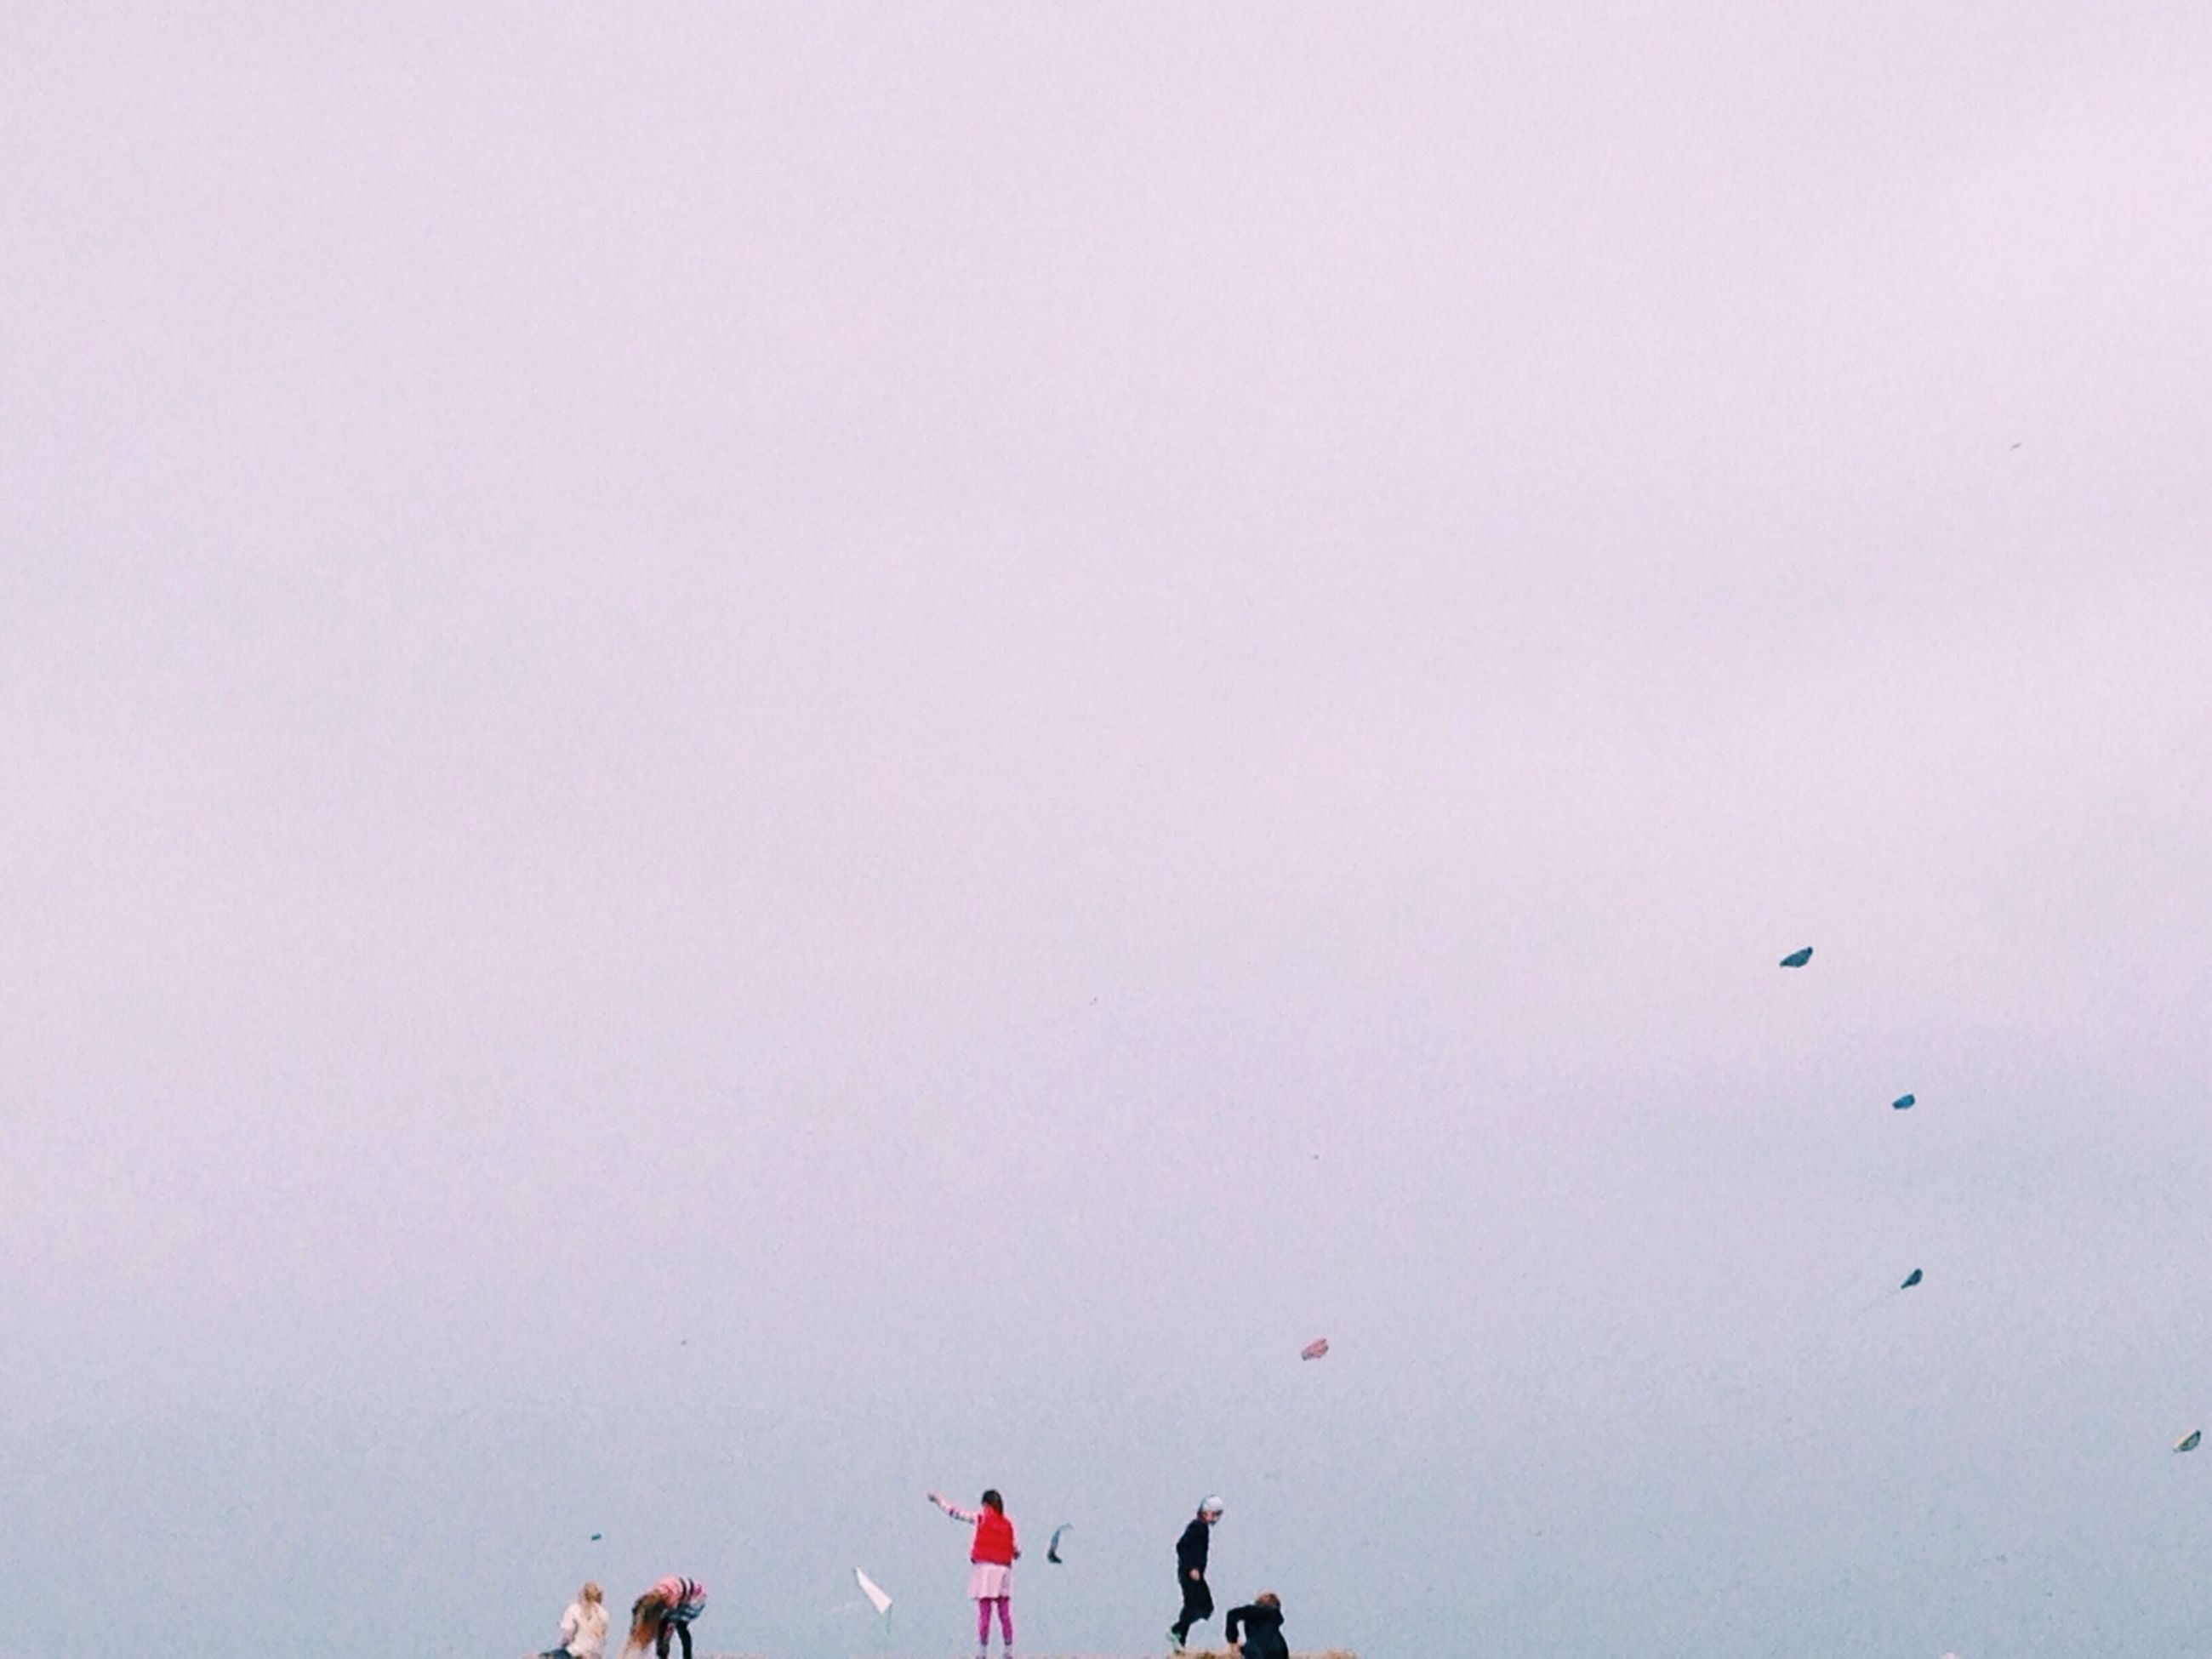 copy space, large group of people, clear sky, lifestyles, men, leisure activity, person, mixed age range, togetherness, outdoors, day, standing, low angle view, enjoyment, sky, medium group of people, crowd, walking, group of people